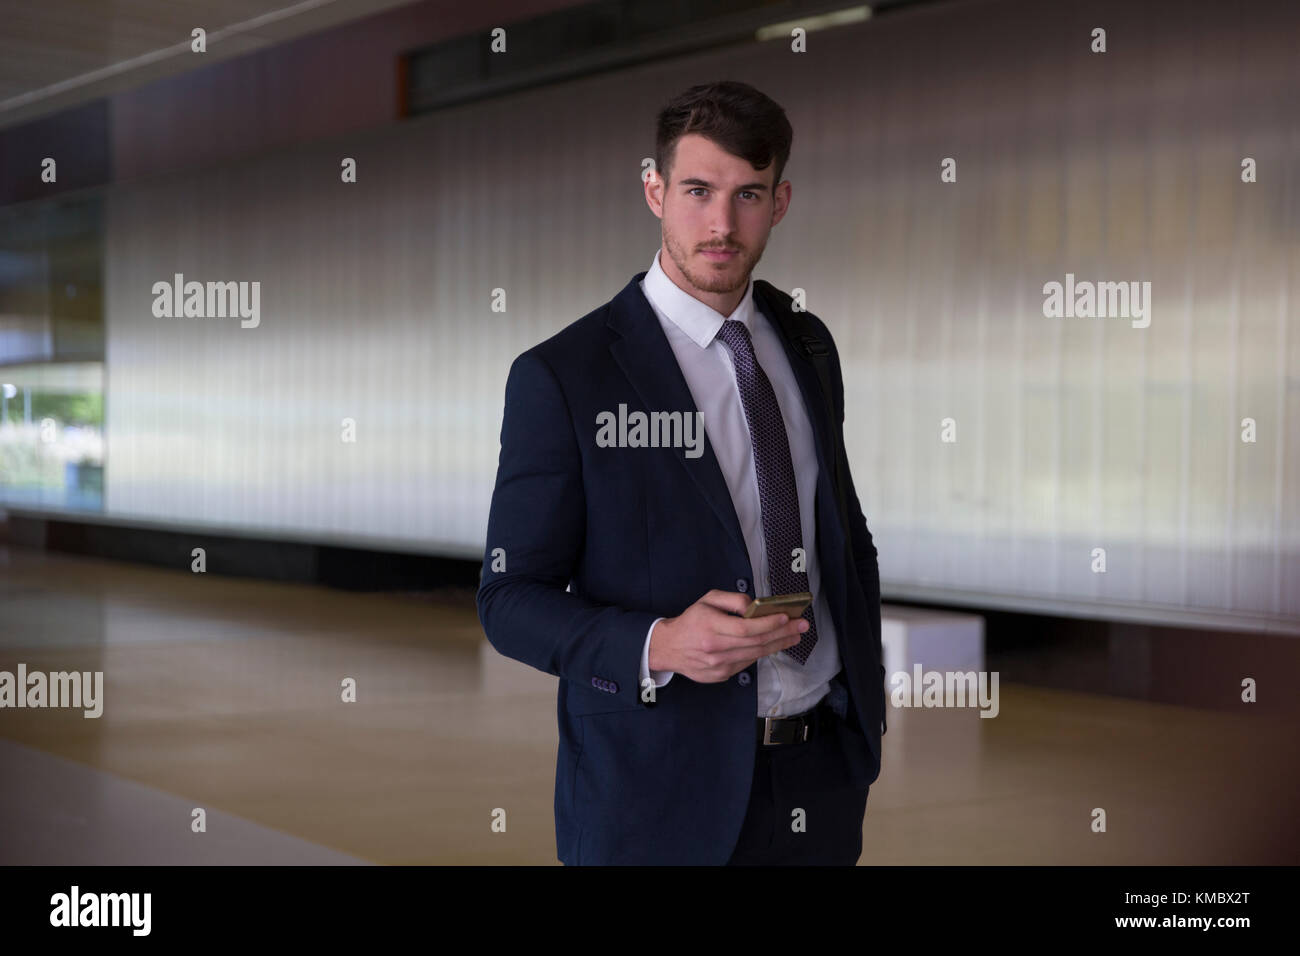 Portrait confident, serious businessman texting with smart phone in office lobby - Stock Image